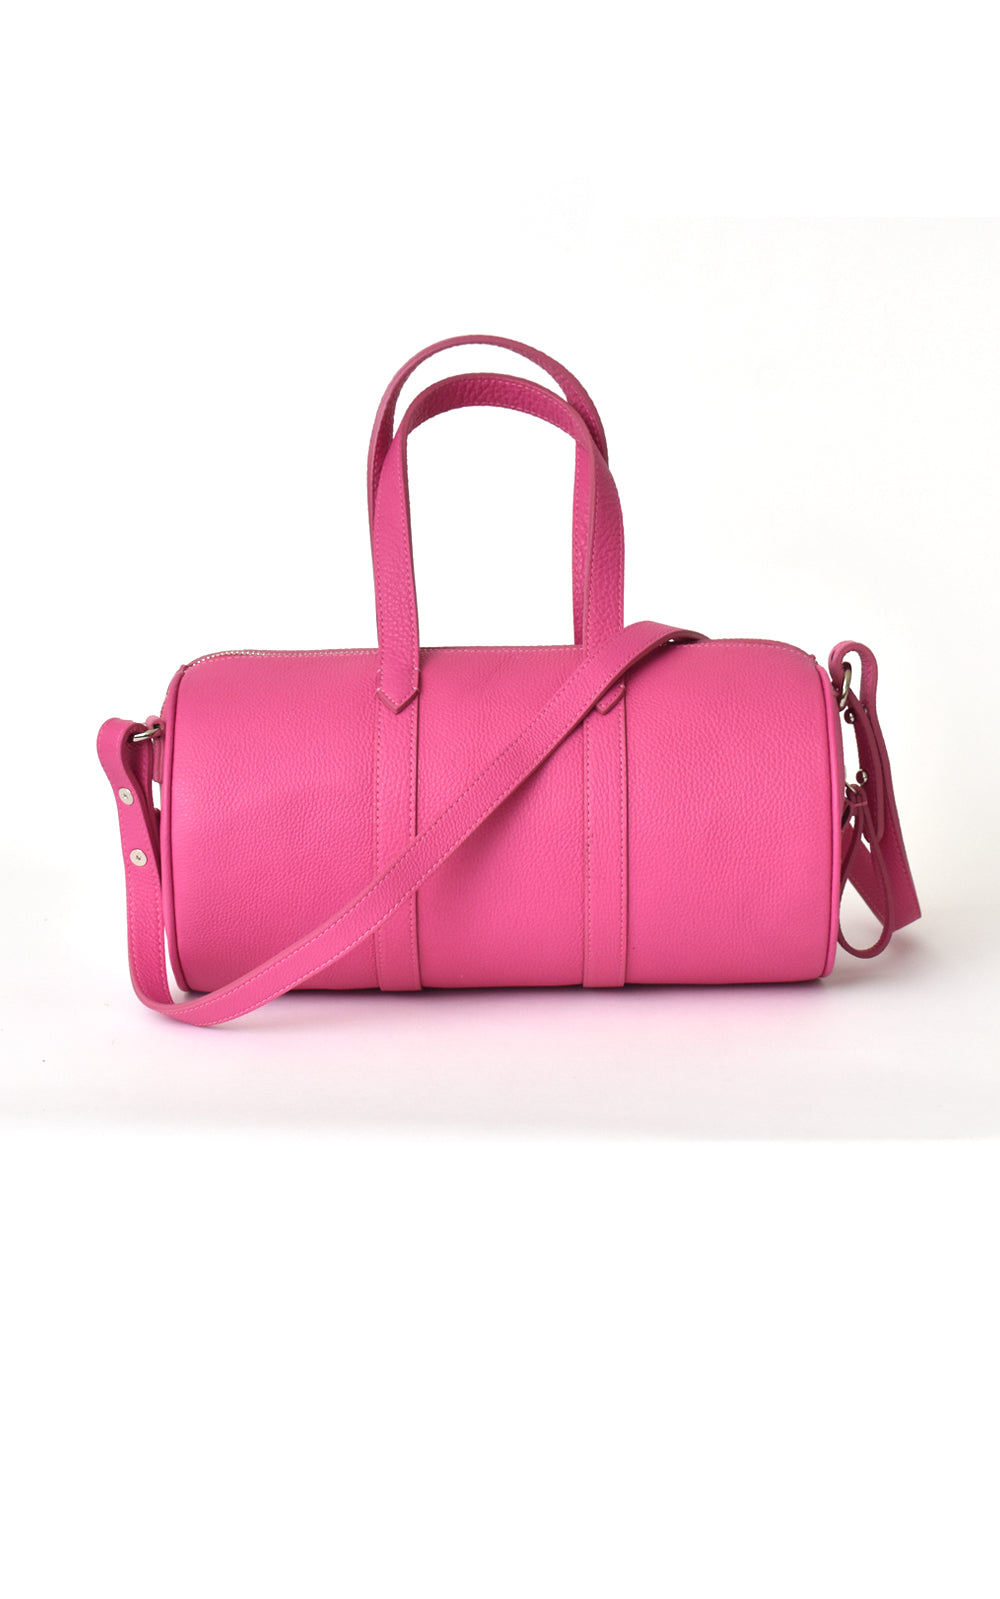 H-ology Leather Mini Duffel Handbag Fuchsia